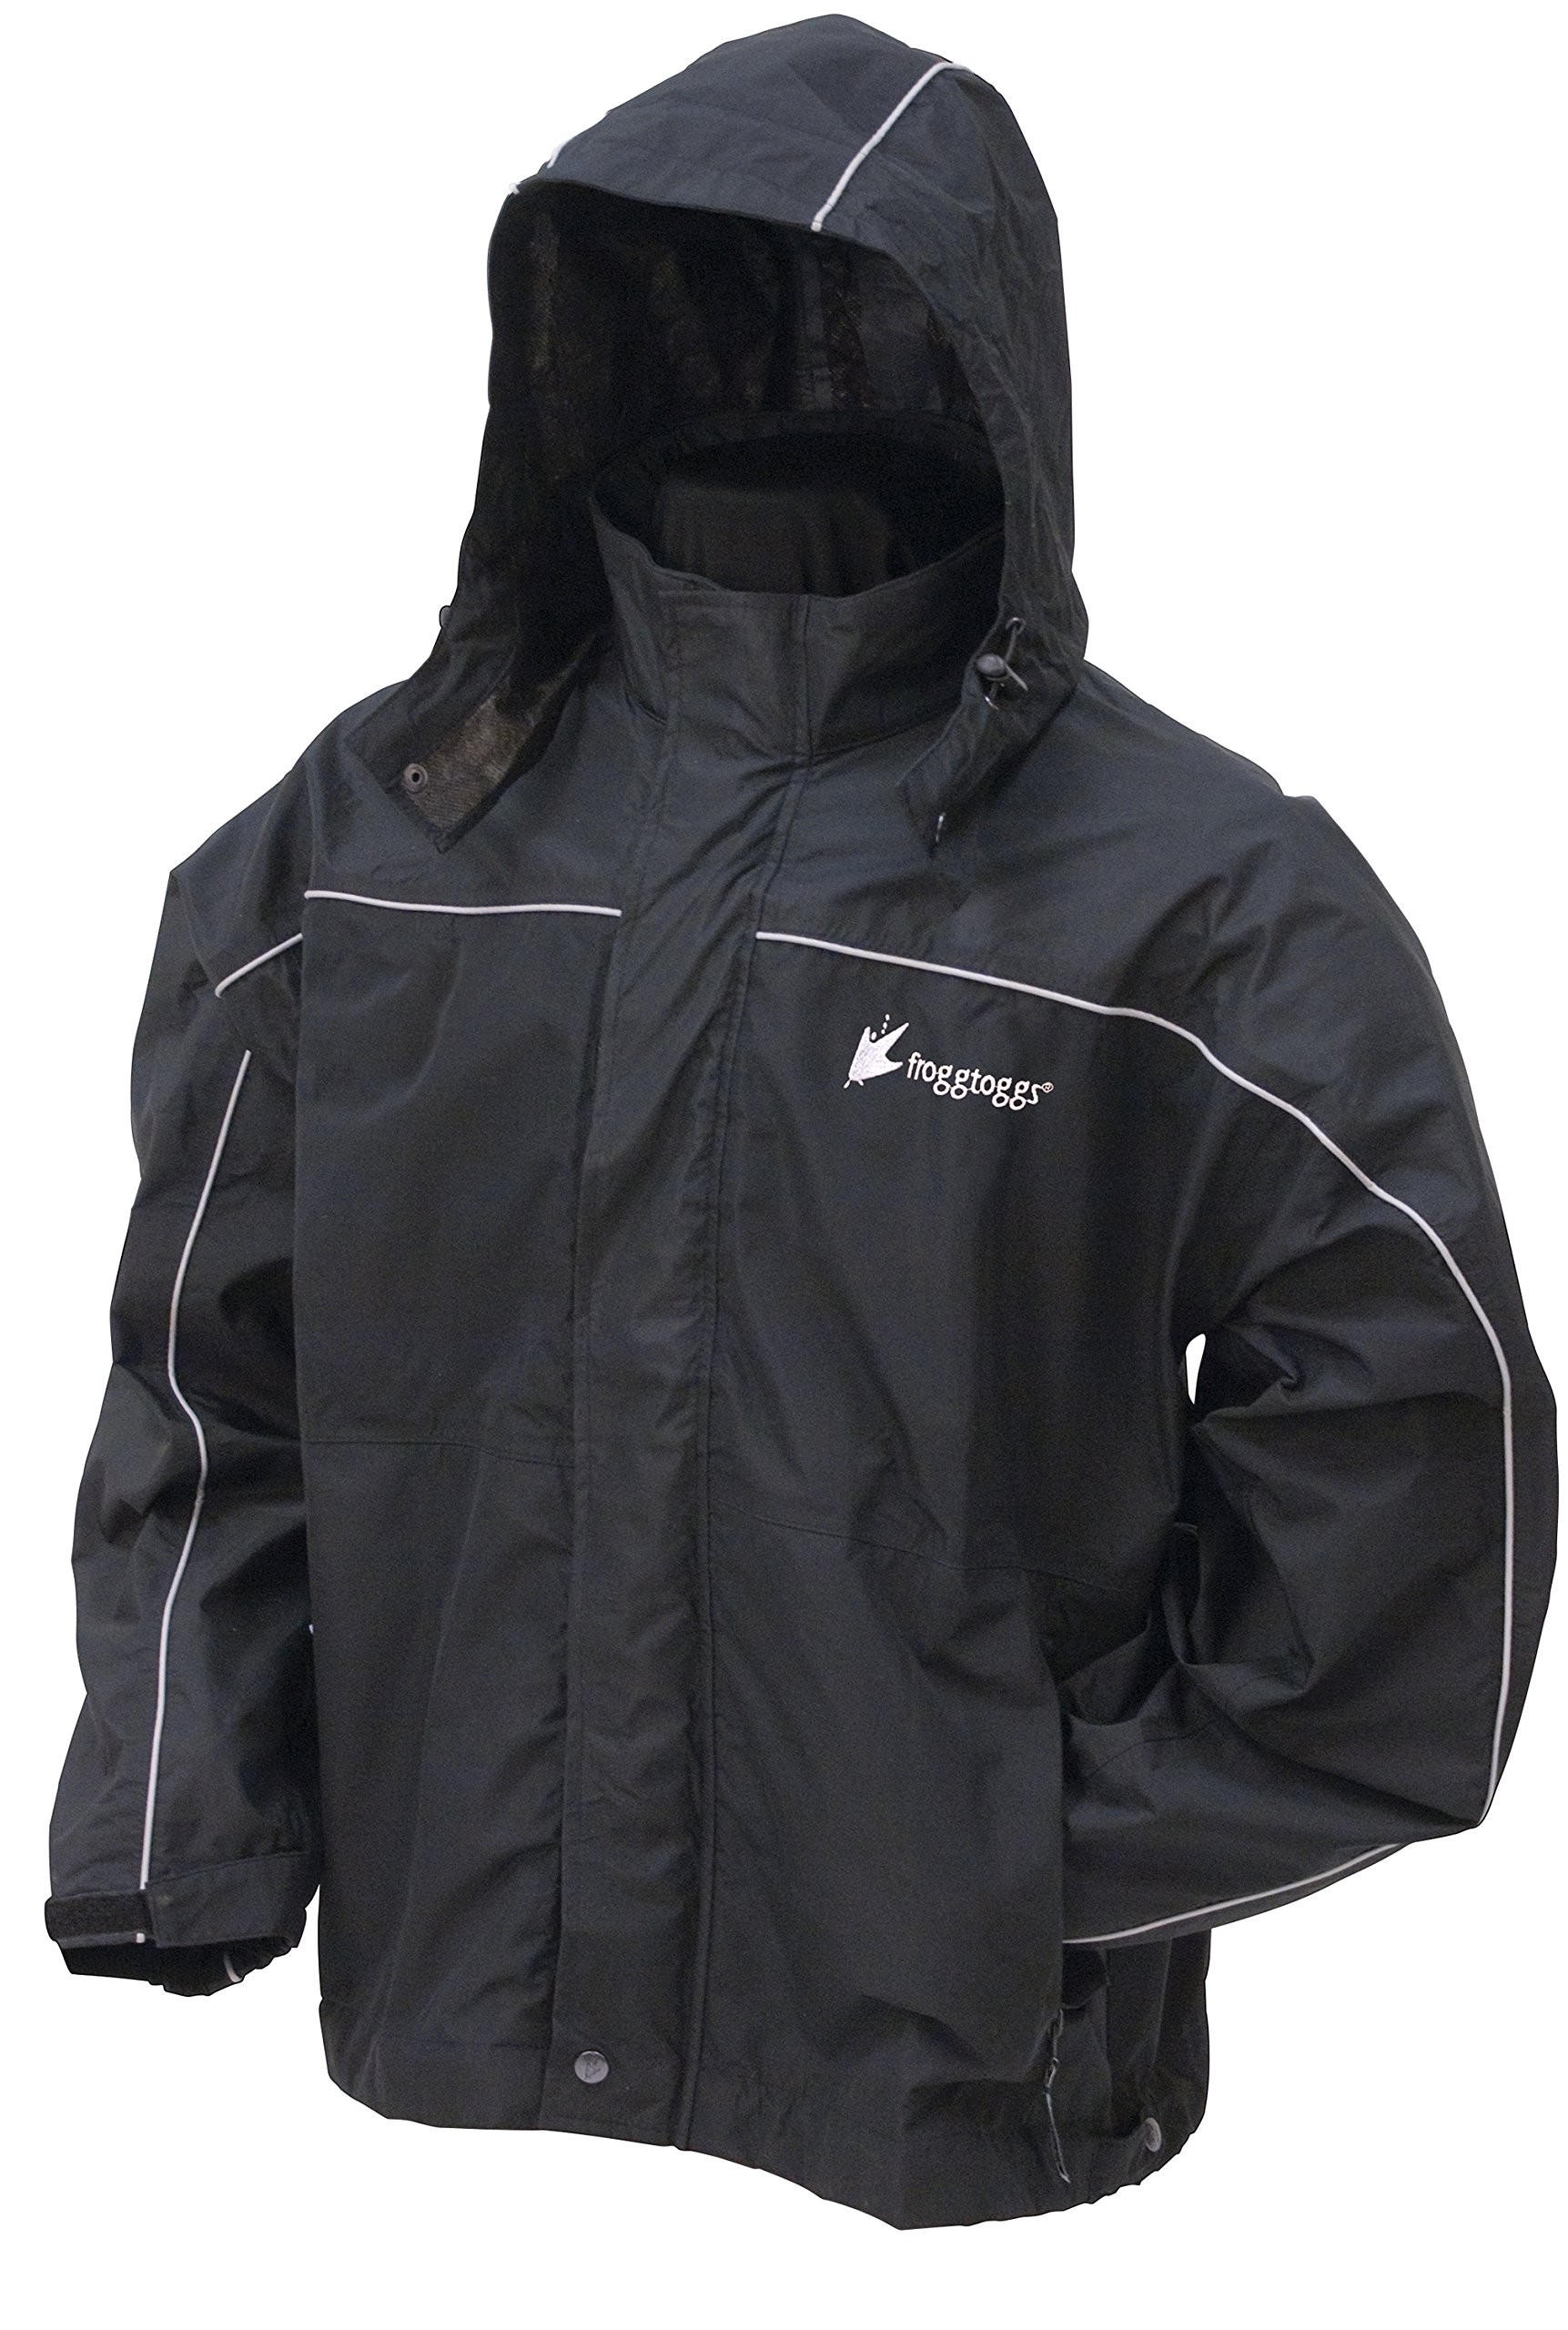 Frogg Toggs Nth65125 Toadz Waterproof & Breathable Highway Reflective Rain Jacket, Black Silver, X-Large